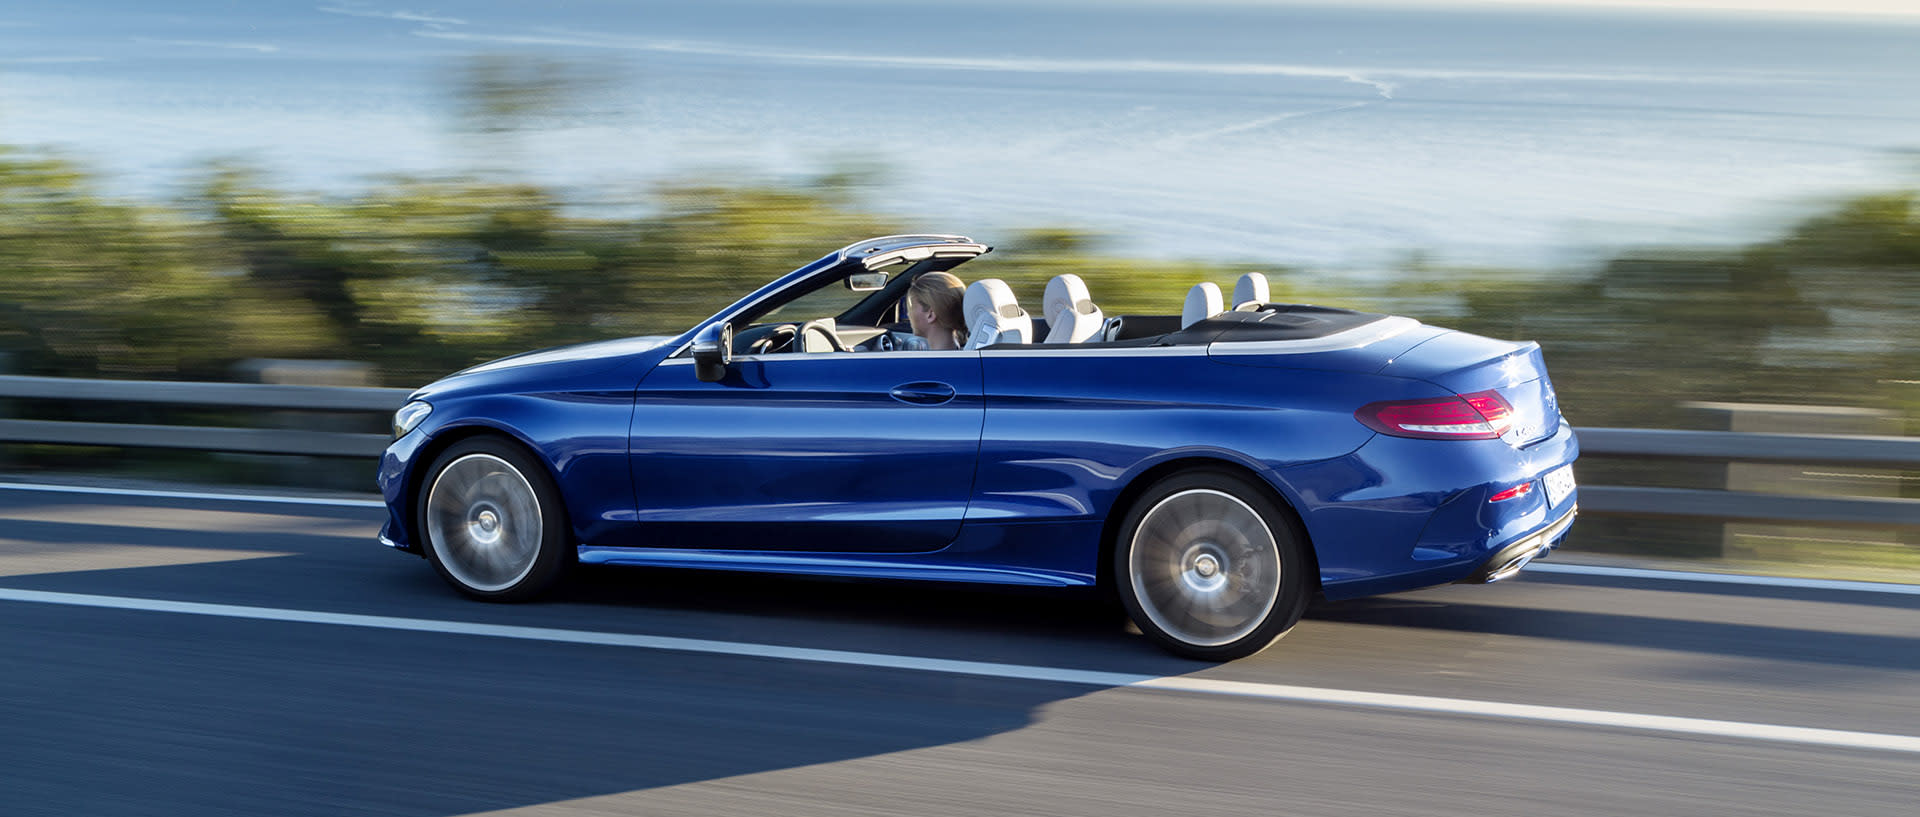 Mercedes benz takes the top off c class coupe for The best mercedes benz